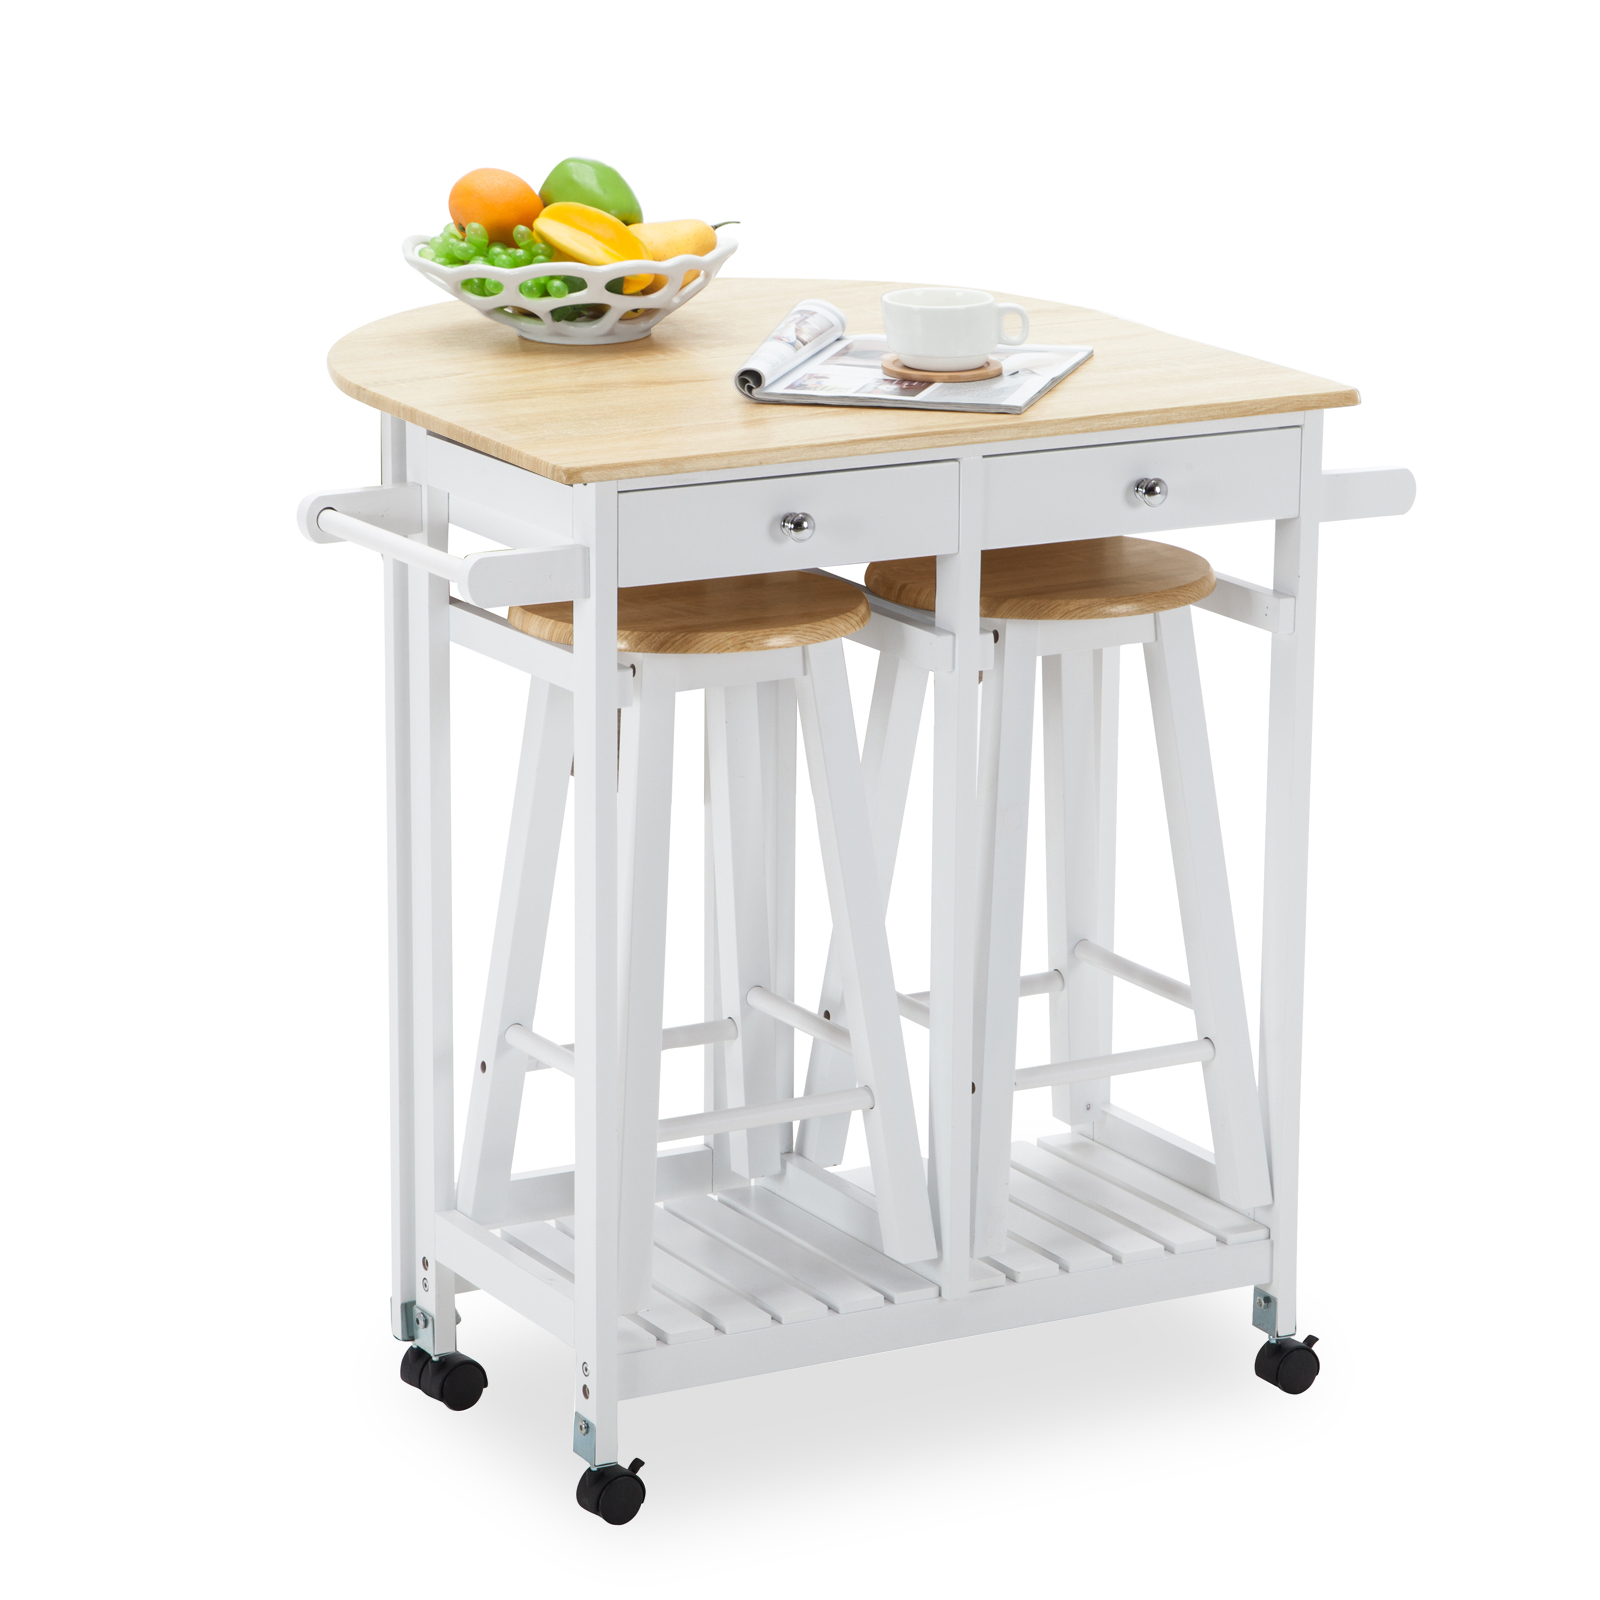 Modern Kitchen Bar Stools Kitchen Islands With Table: Kitchen Island Rolling Trolley Cart Storage Dinning Table